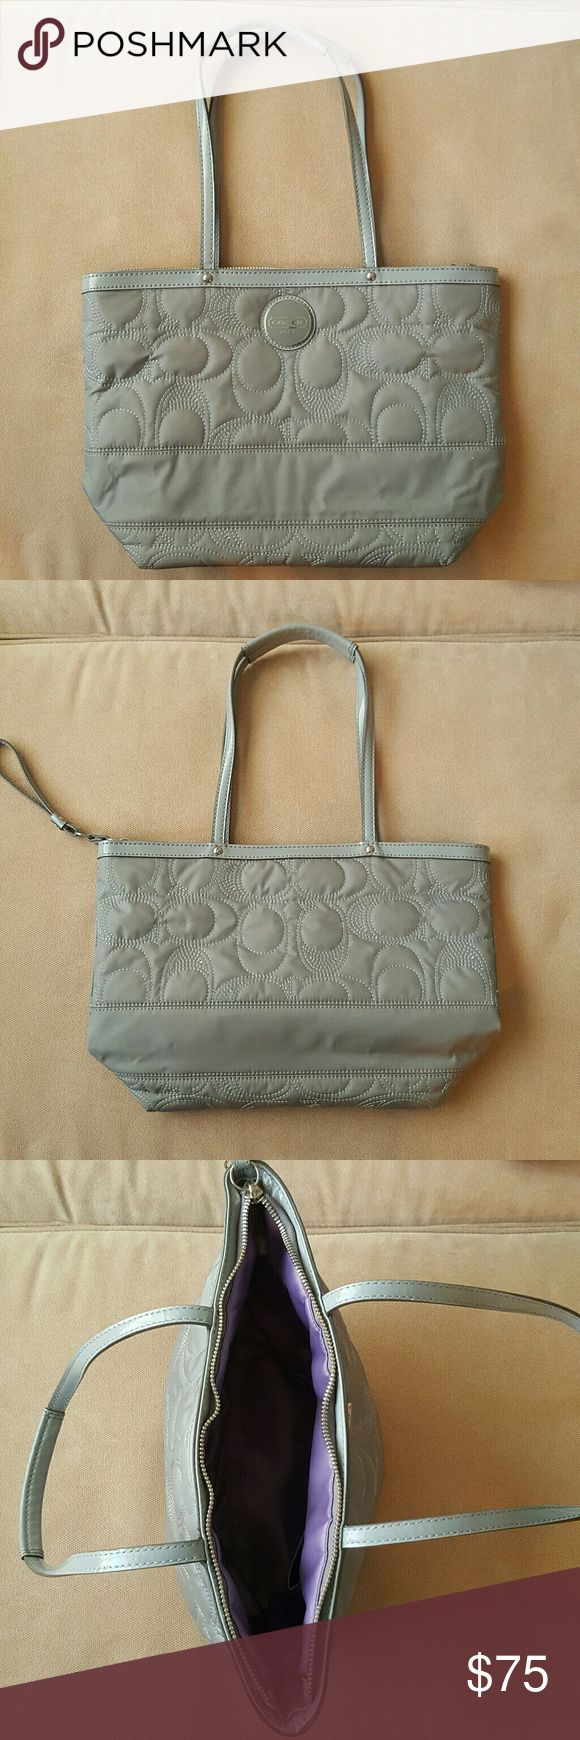 Coach Signature Stitch Nylon Tote in Gray Excellent condition, gray quilted nylon tote bag.  Clean inside and outside, light marking inside, but can be cleaned.  Worn over the shoulder, this is a great bag! Coach Bags Totes